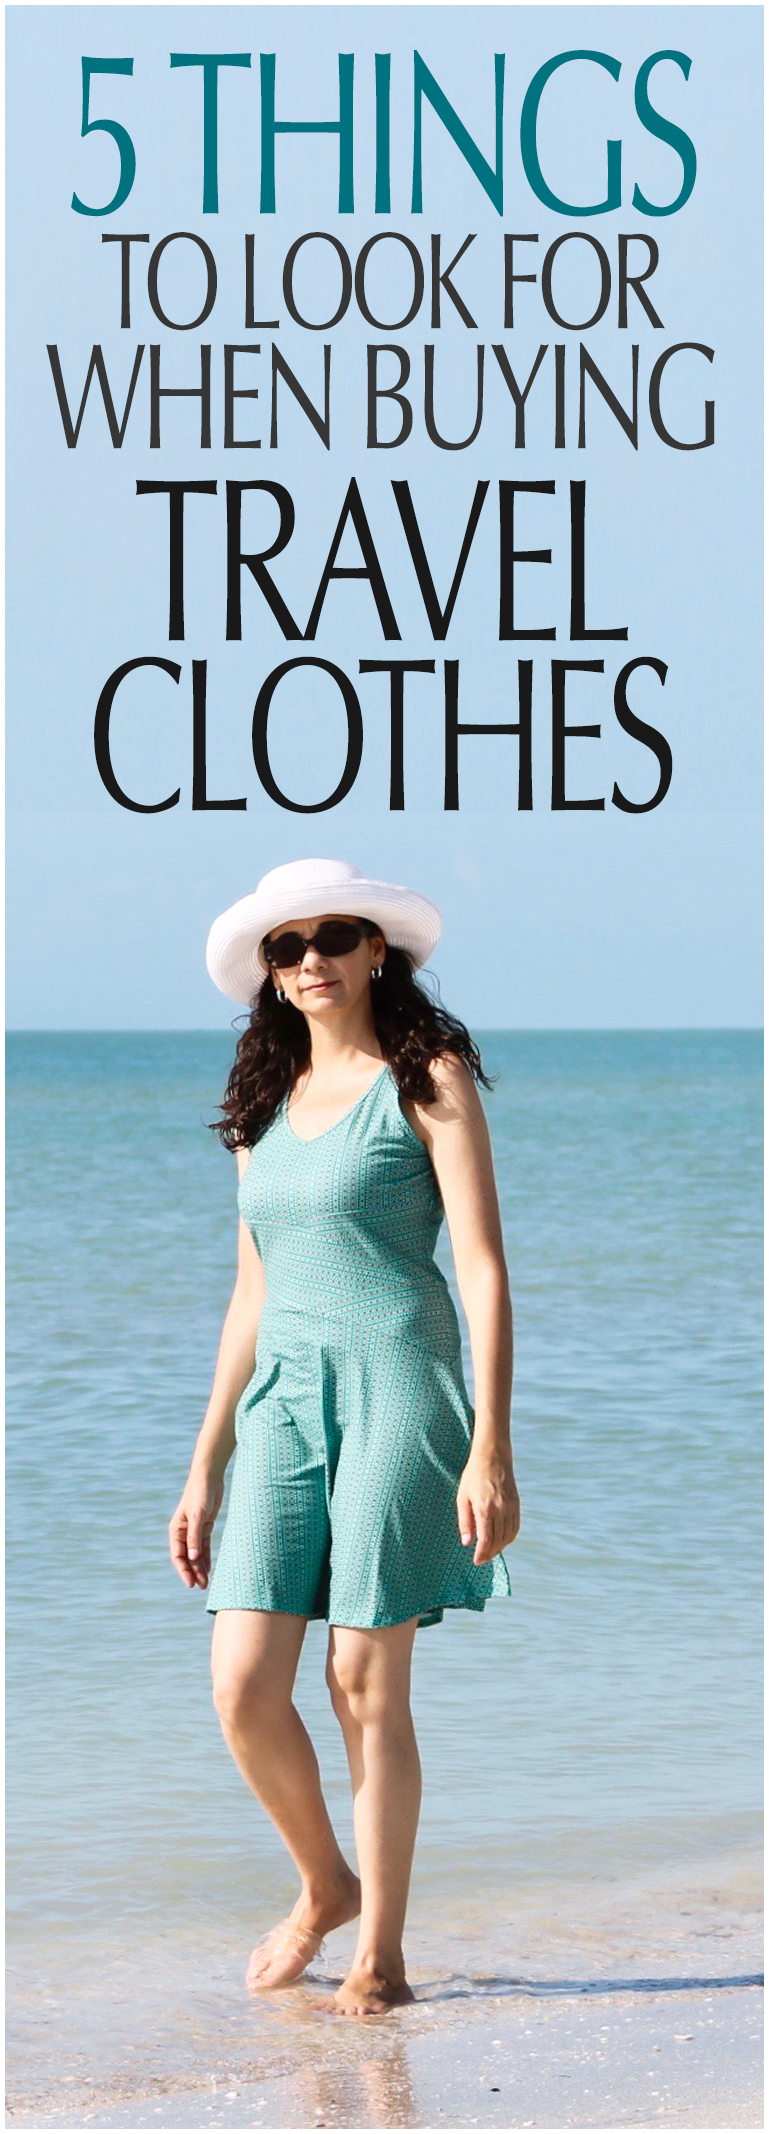 great tips for buying travel clothes